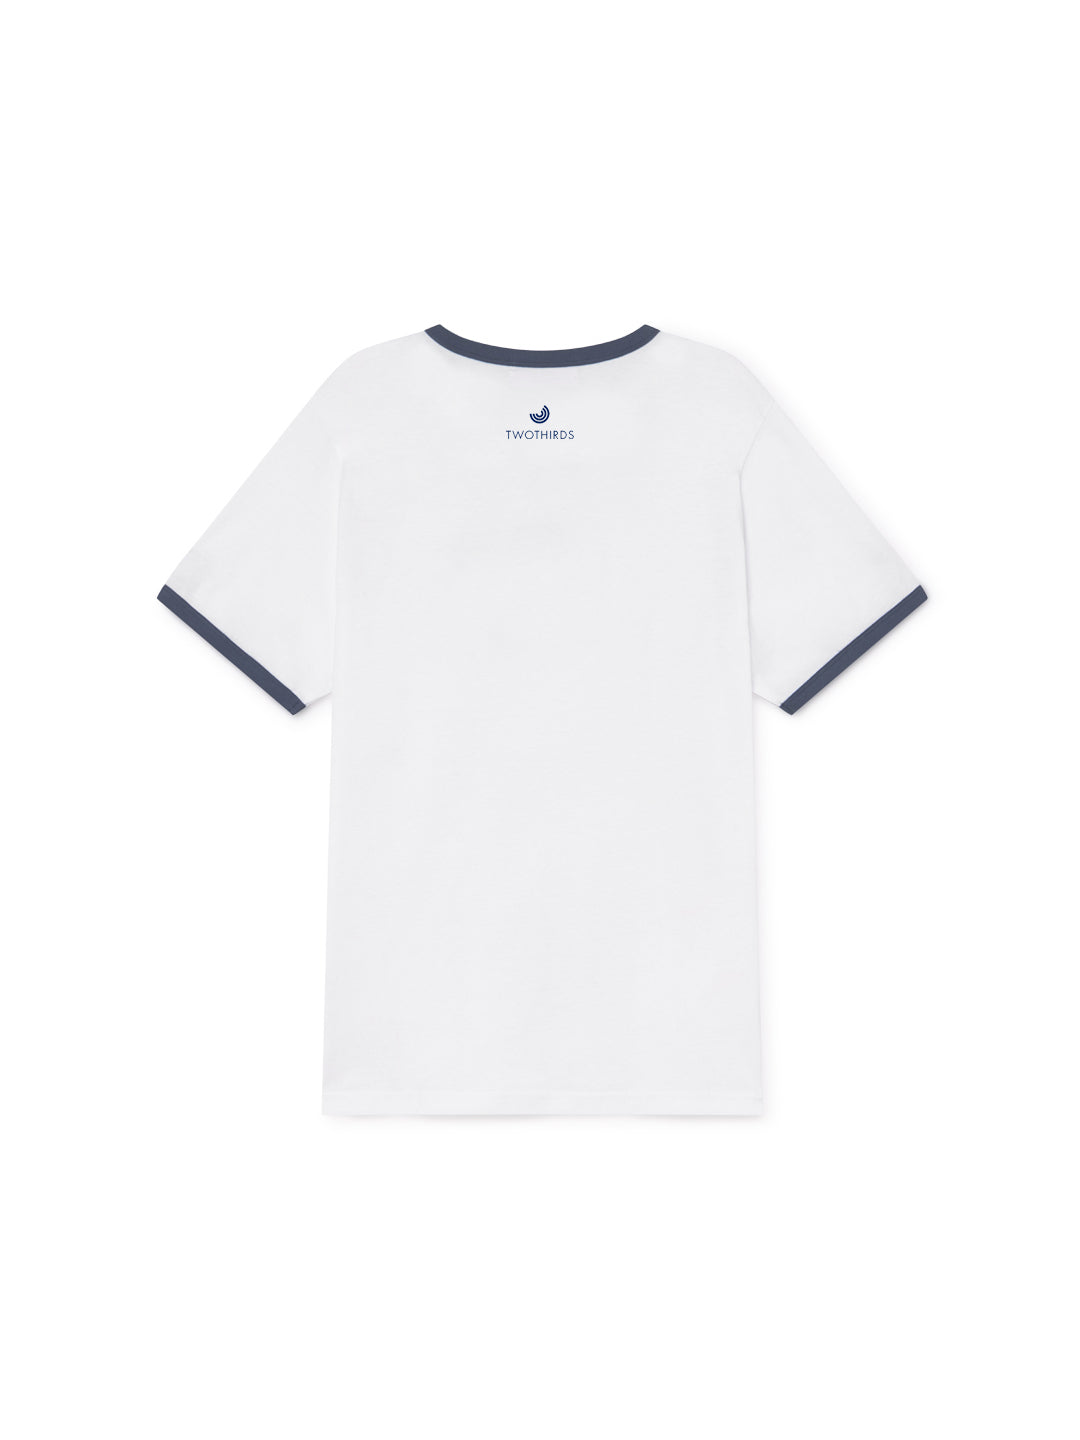 TWOTHIRDS Mens Tee: Thunberg - CO2 back